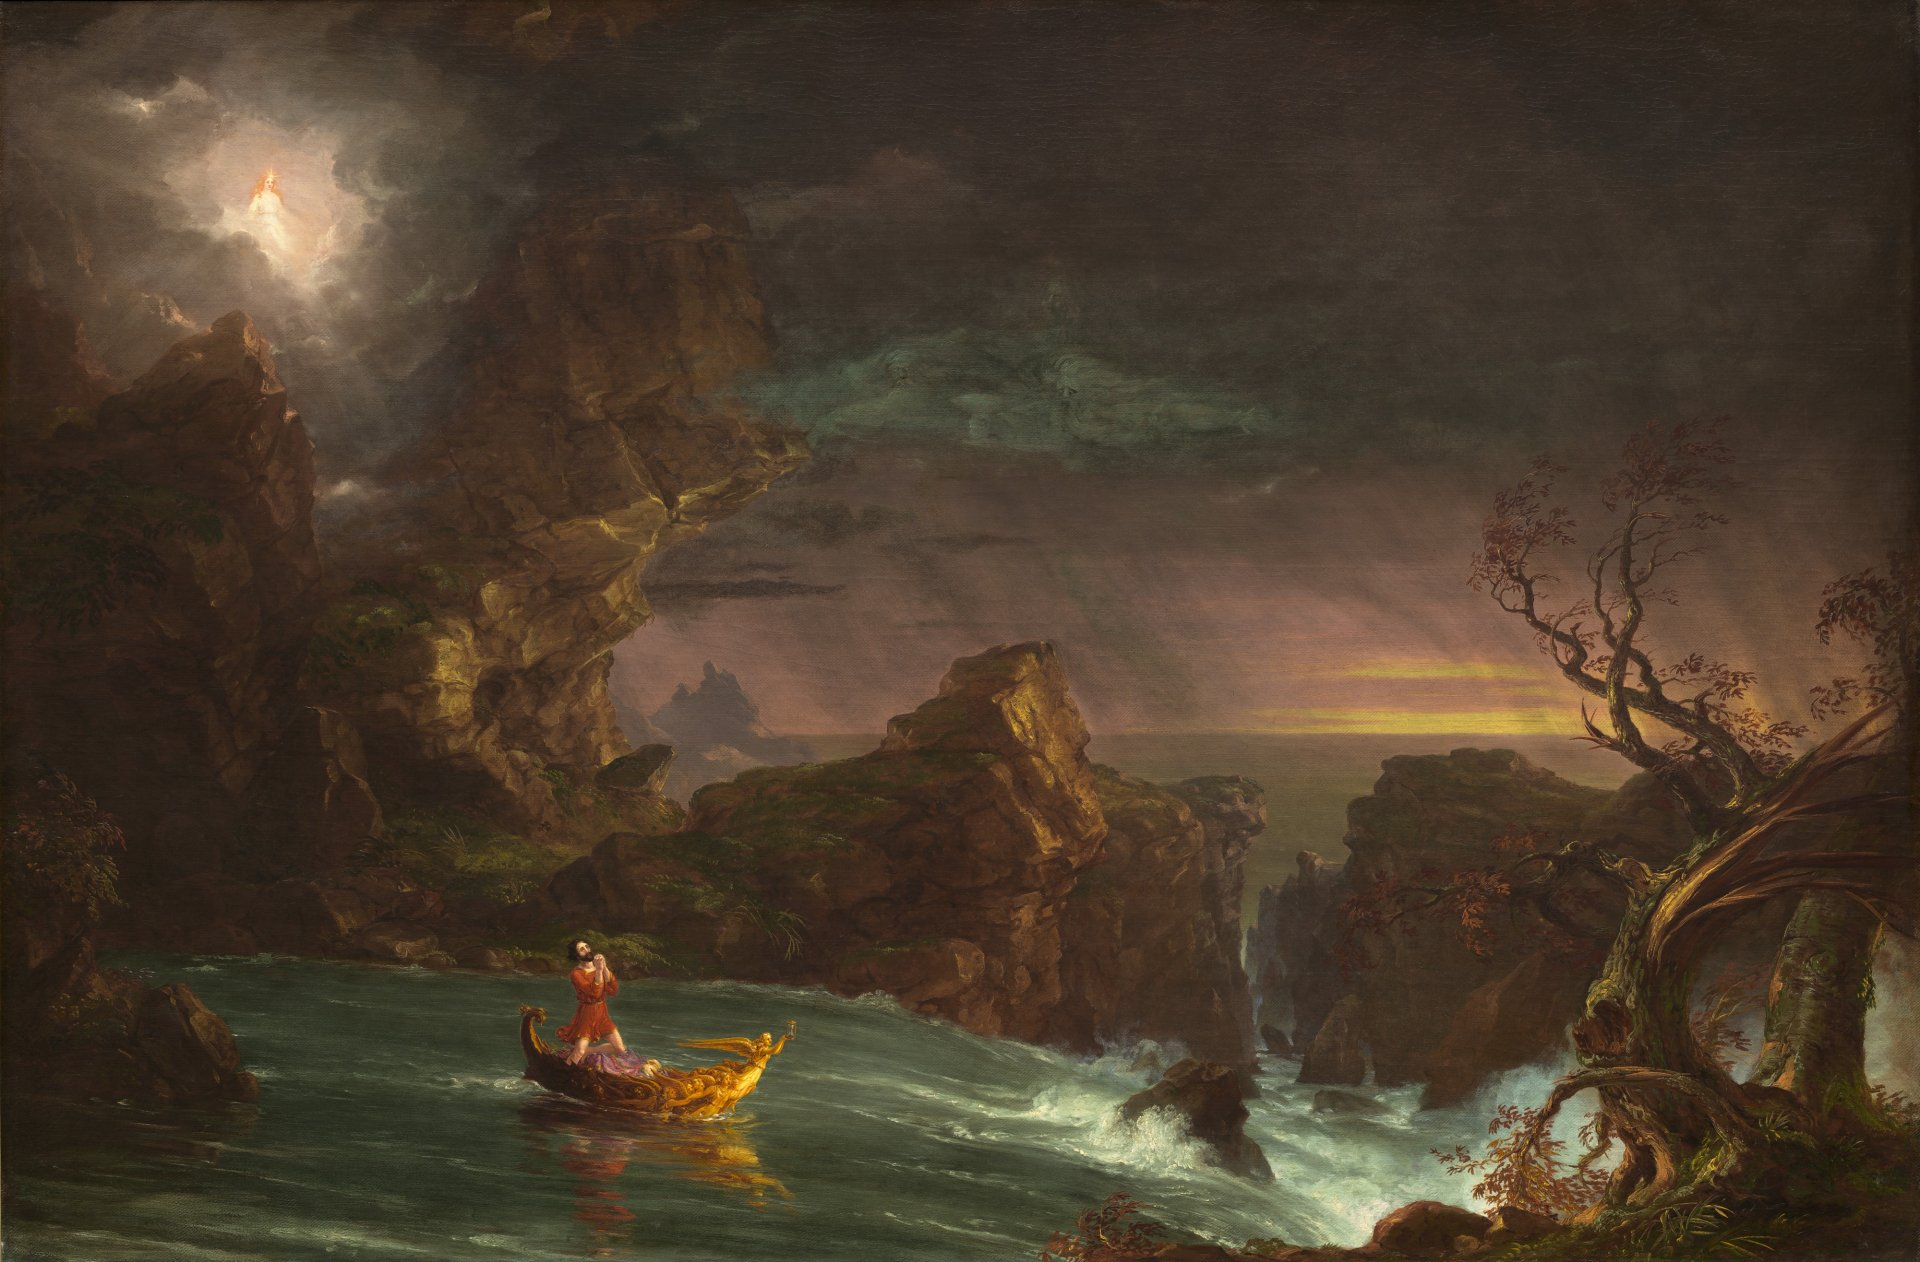 Thomas_Cole,_The_Voyage_of_Life,_1842,_National_Gallery_of_Art.jpg